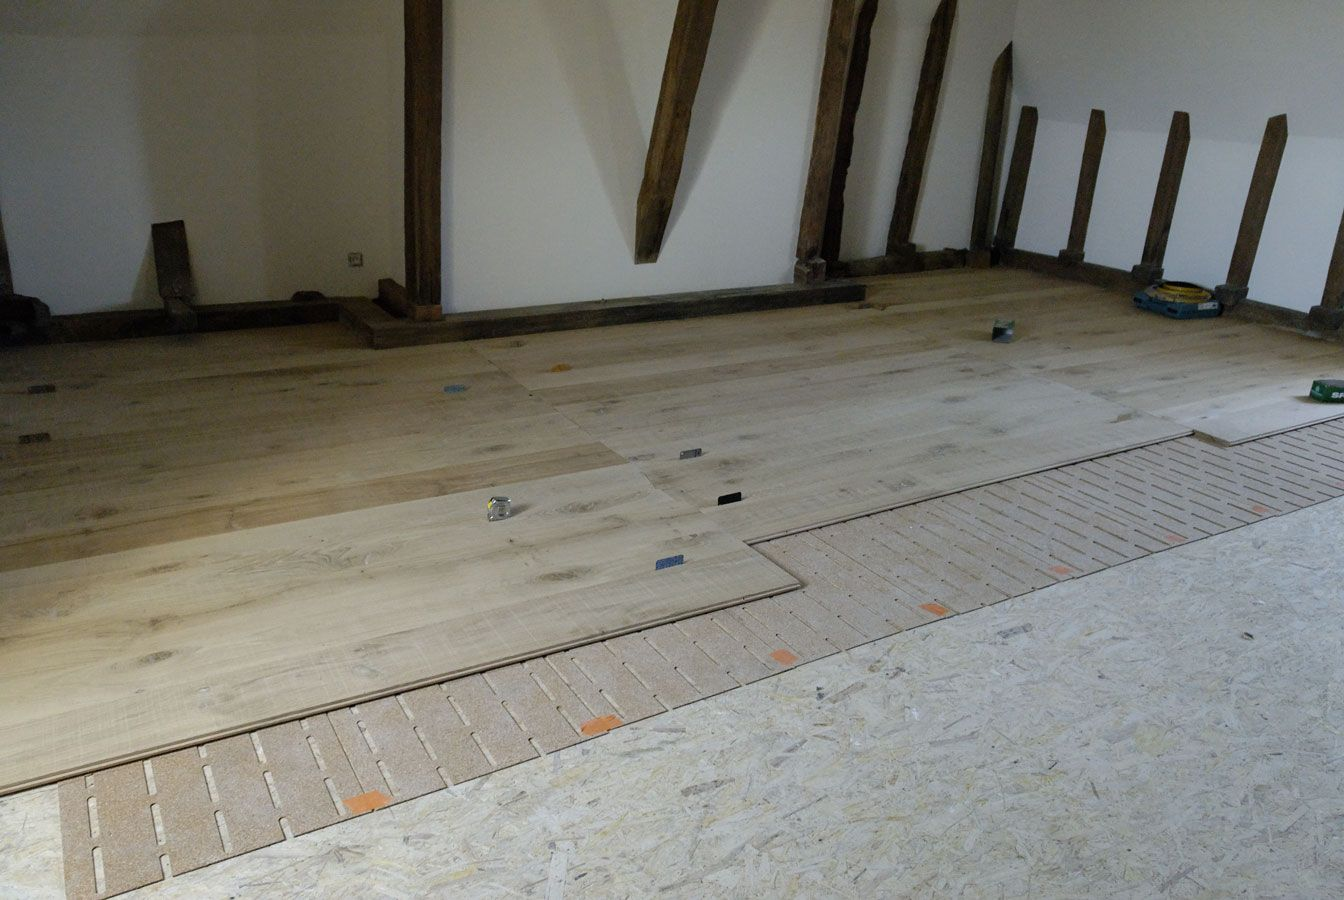 A layer of sound insulation is installed under the floor floor